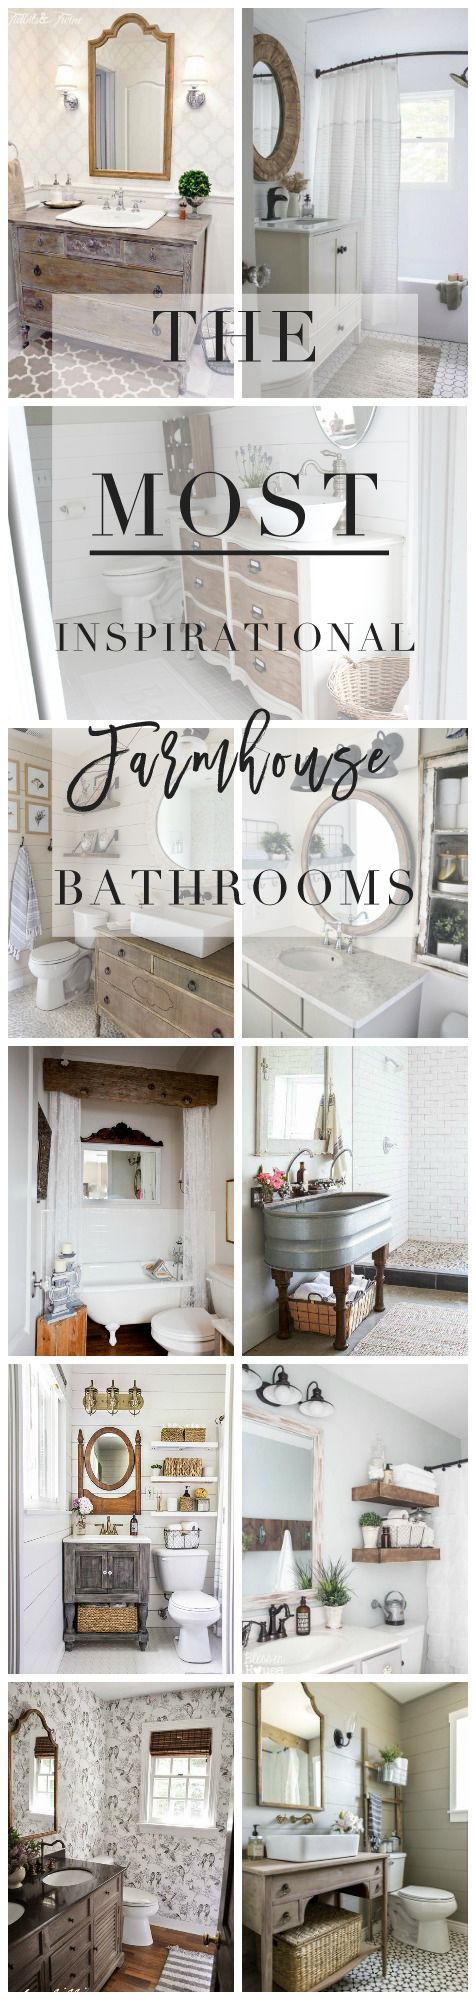 203 best farmhouse bathroom ideas images on pinterest bathroom